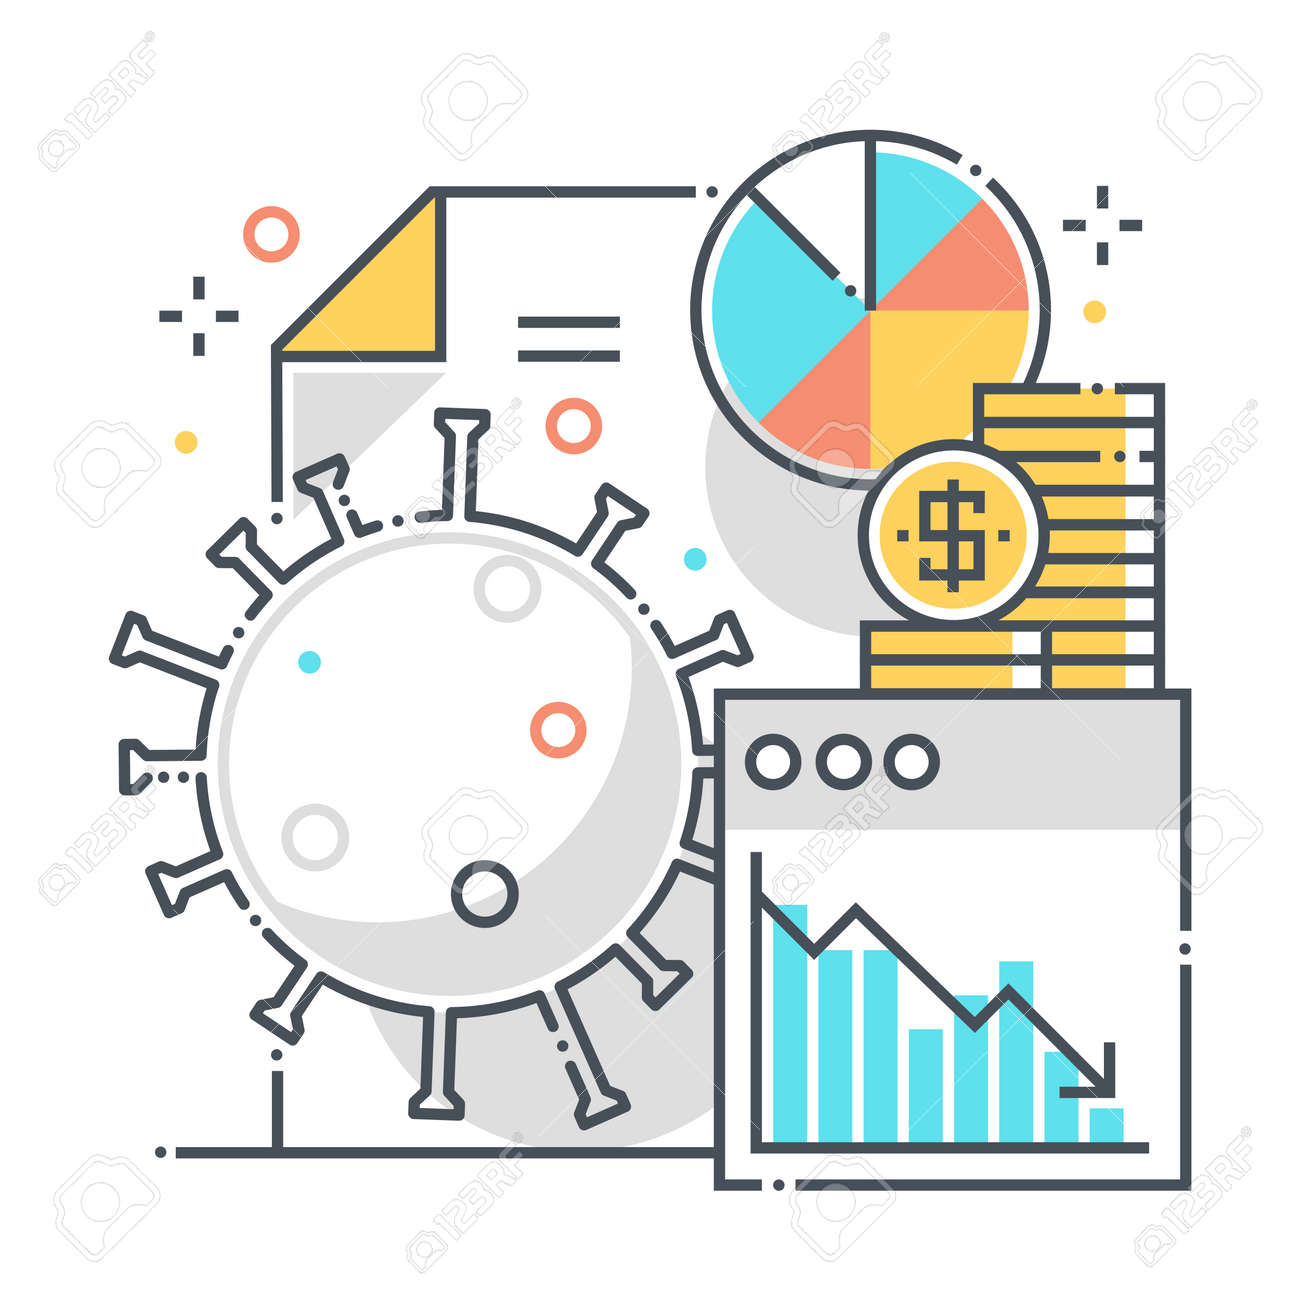 Economy related color line vector icon, illustration. The icon is about statistics, countries, report, percentage, pie chart, corona virus. The composition is infinitely scalable. - 163698059